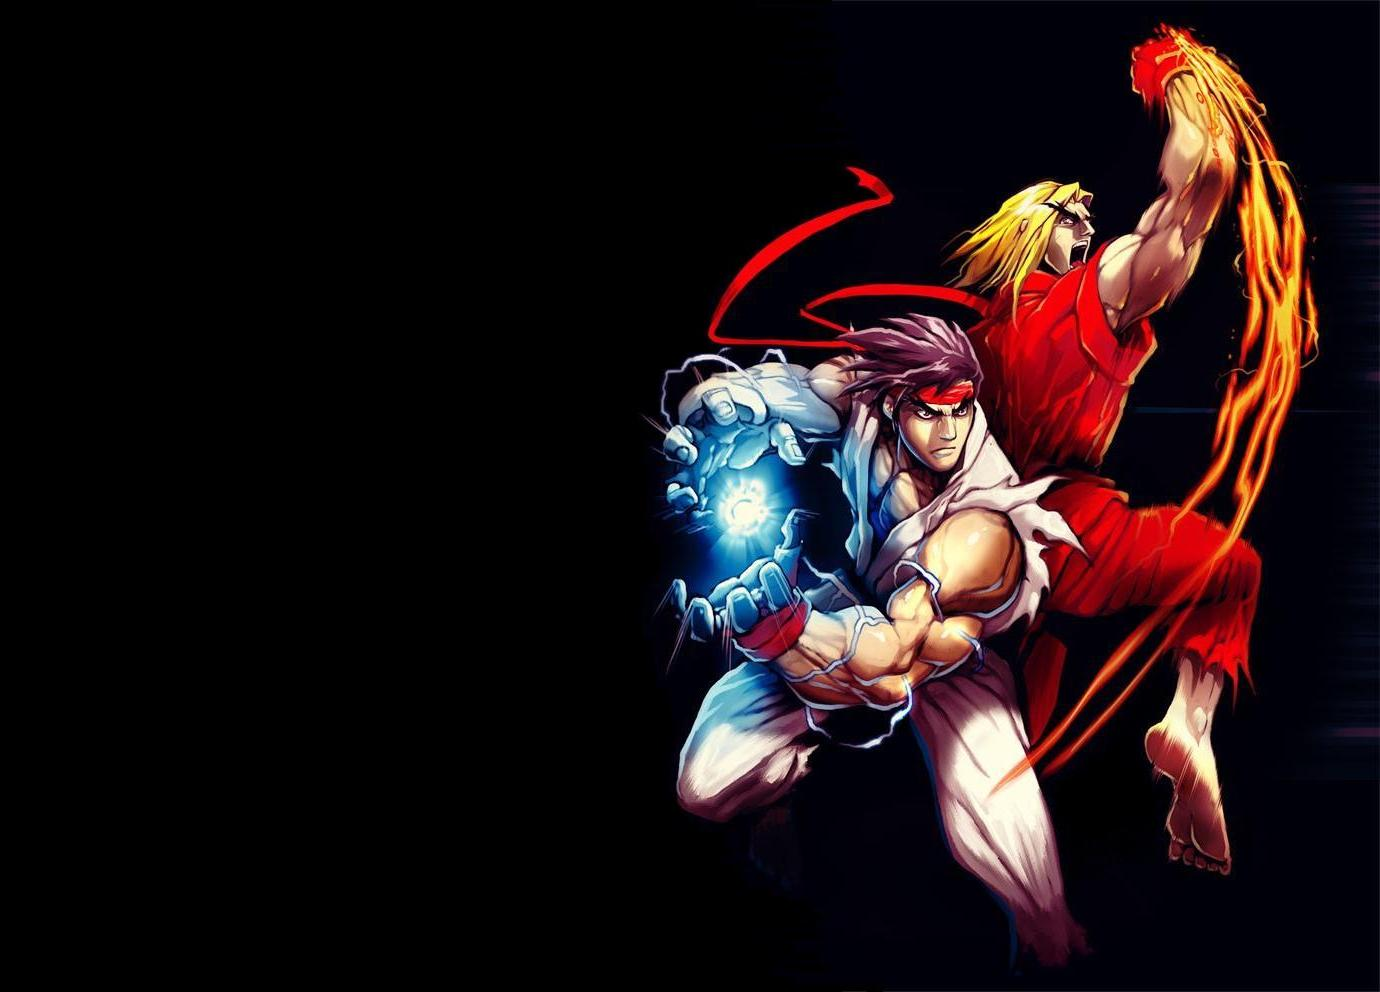 ken street fighter wallpaper - photo #9